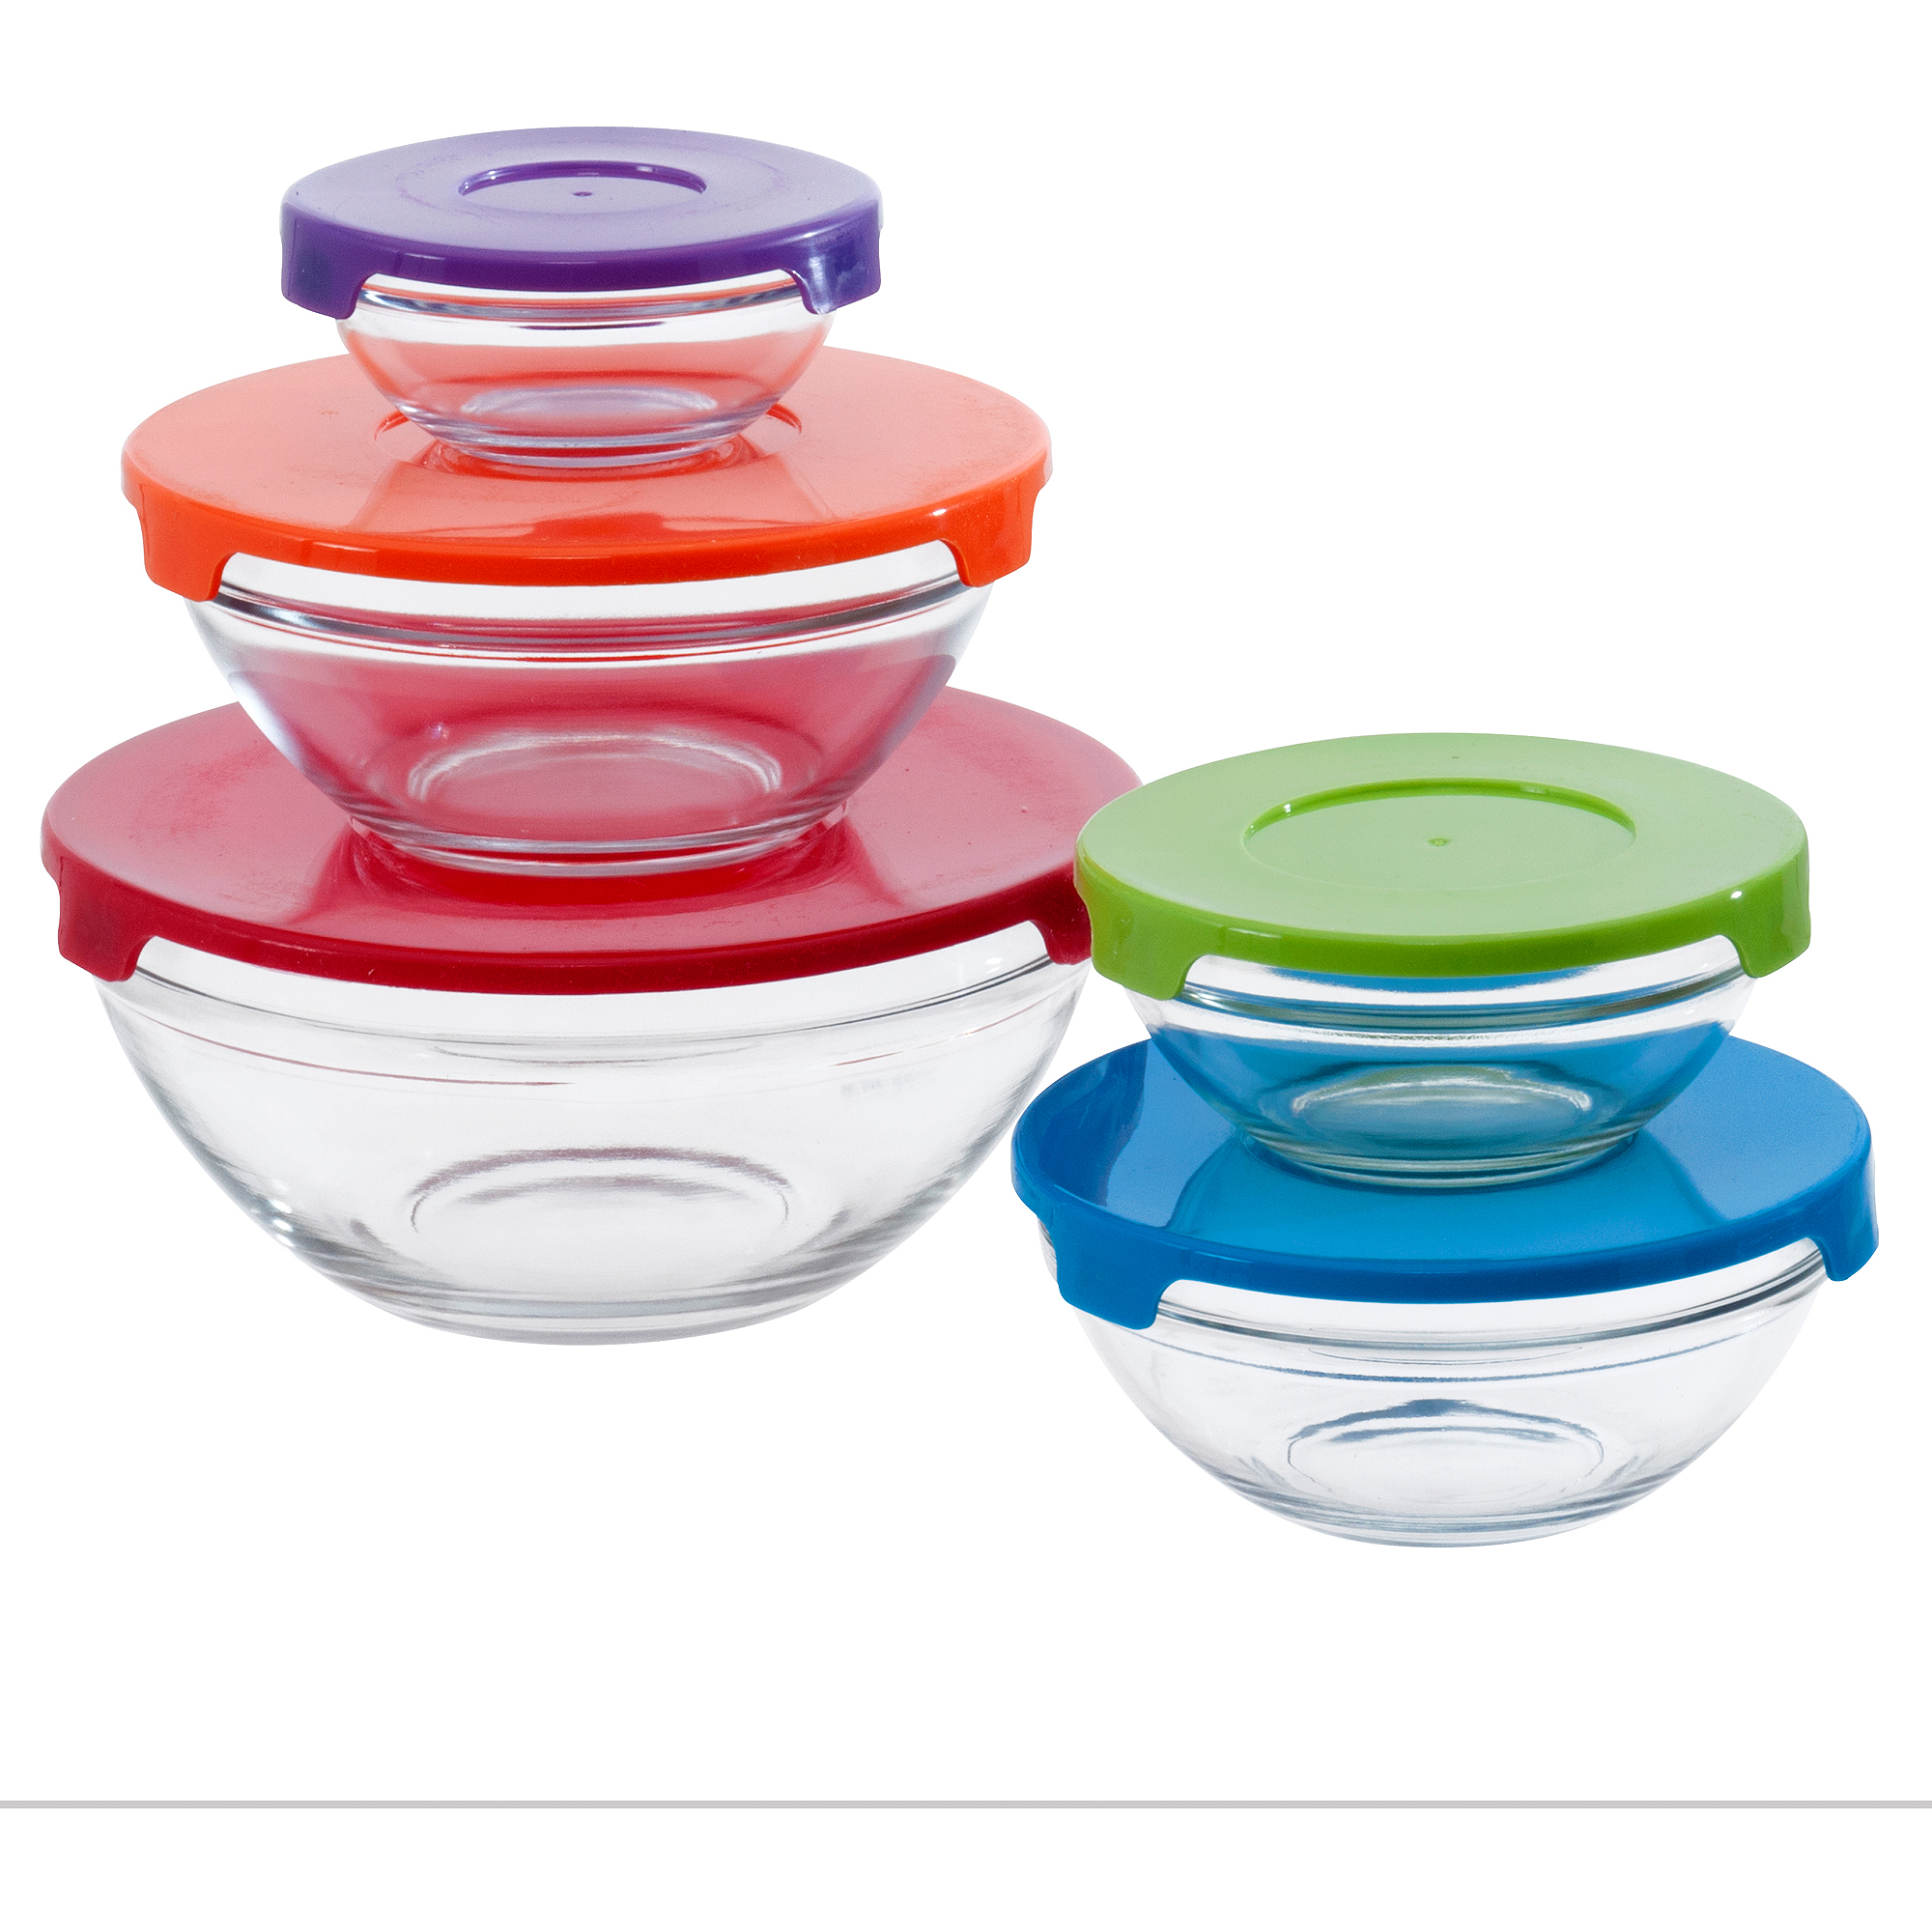 Mainstay Mixing Bowls 10-Piece Set